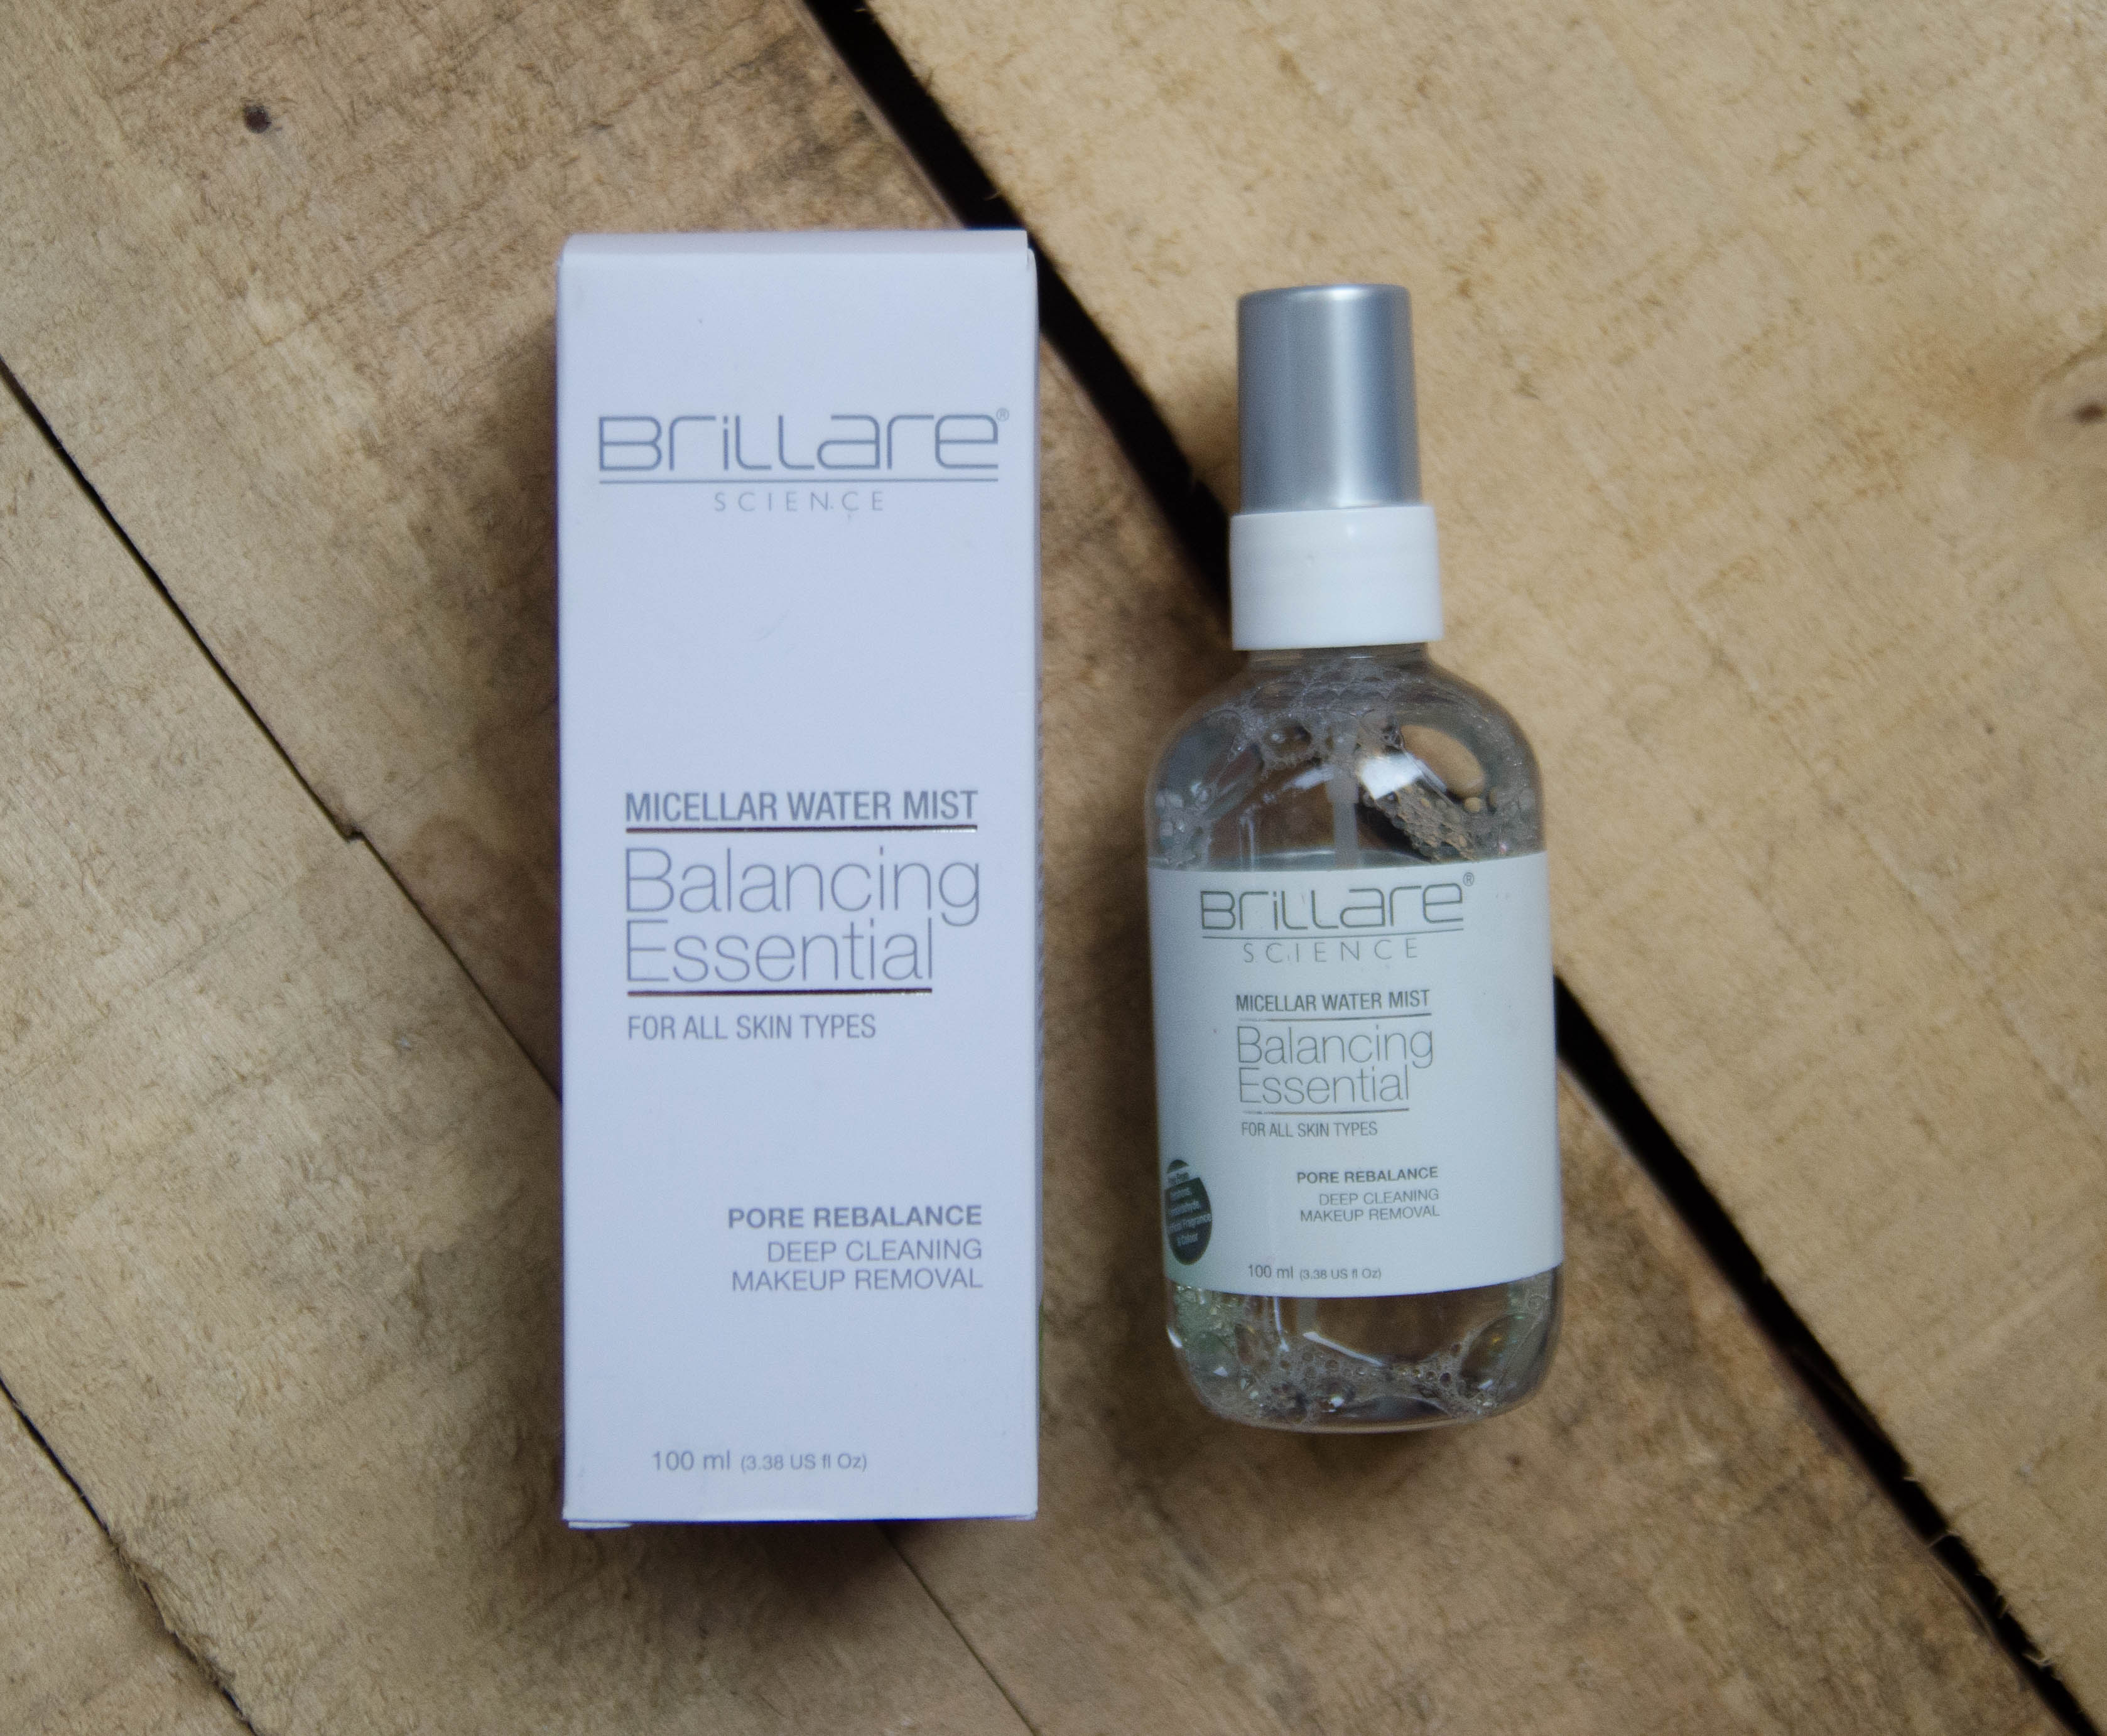 Brillare scince Micellar Water Mist Review, Demo, Price